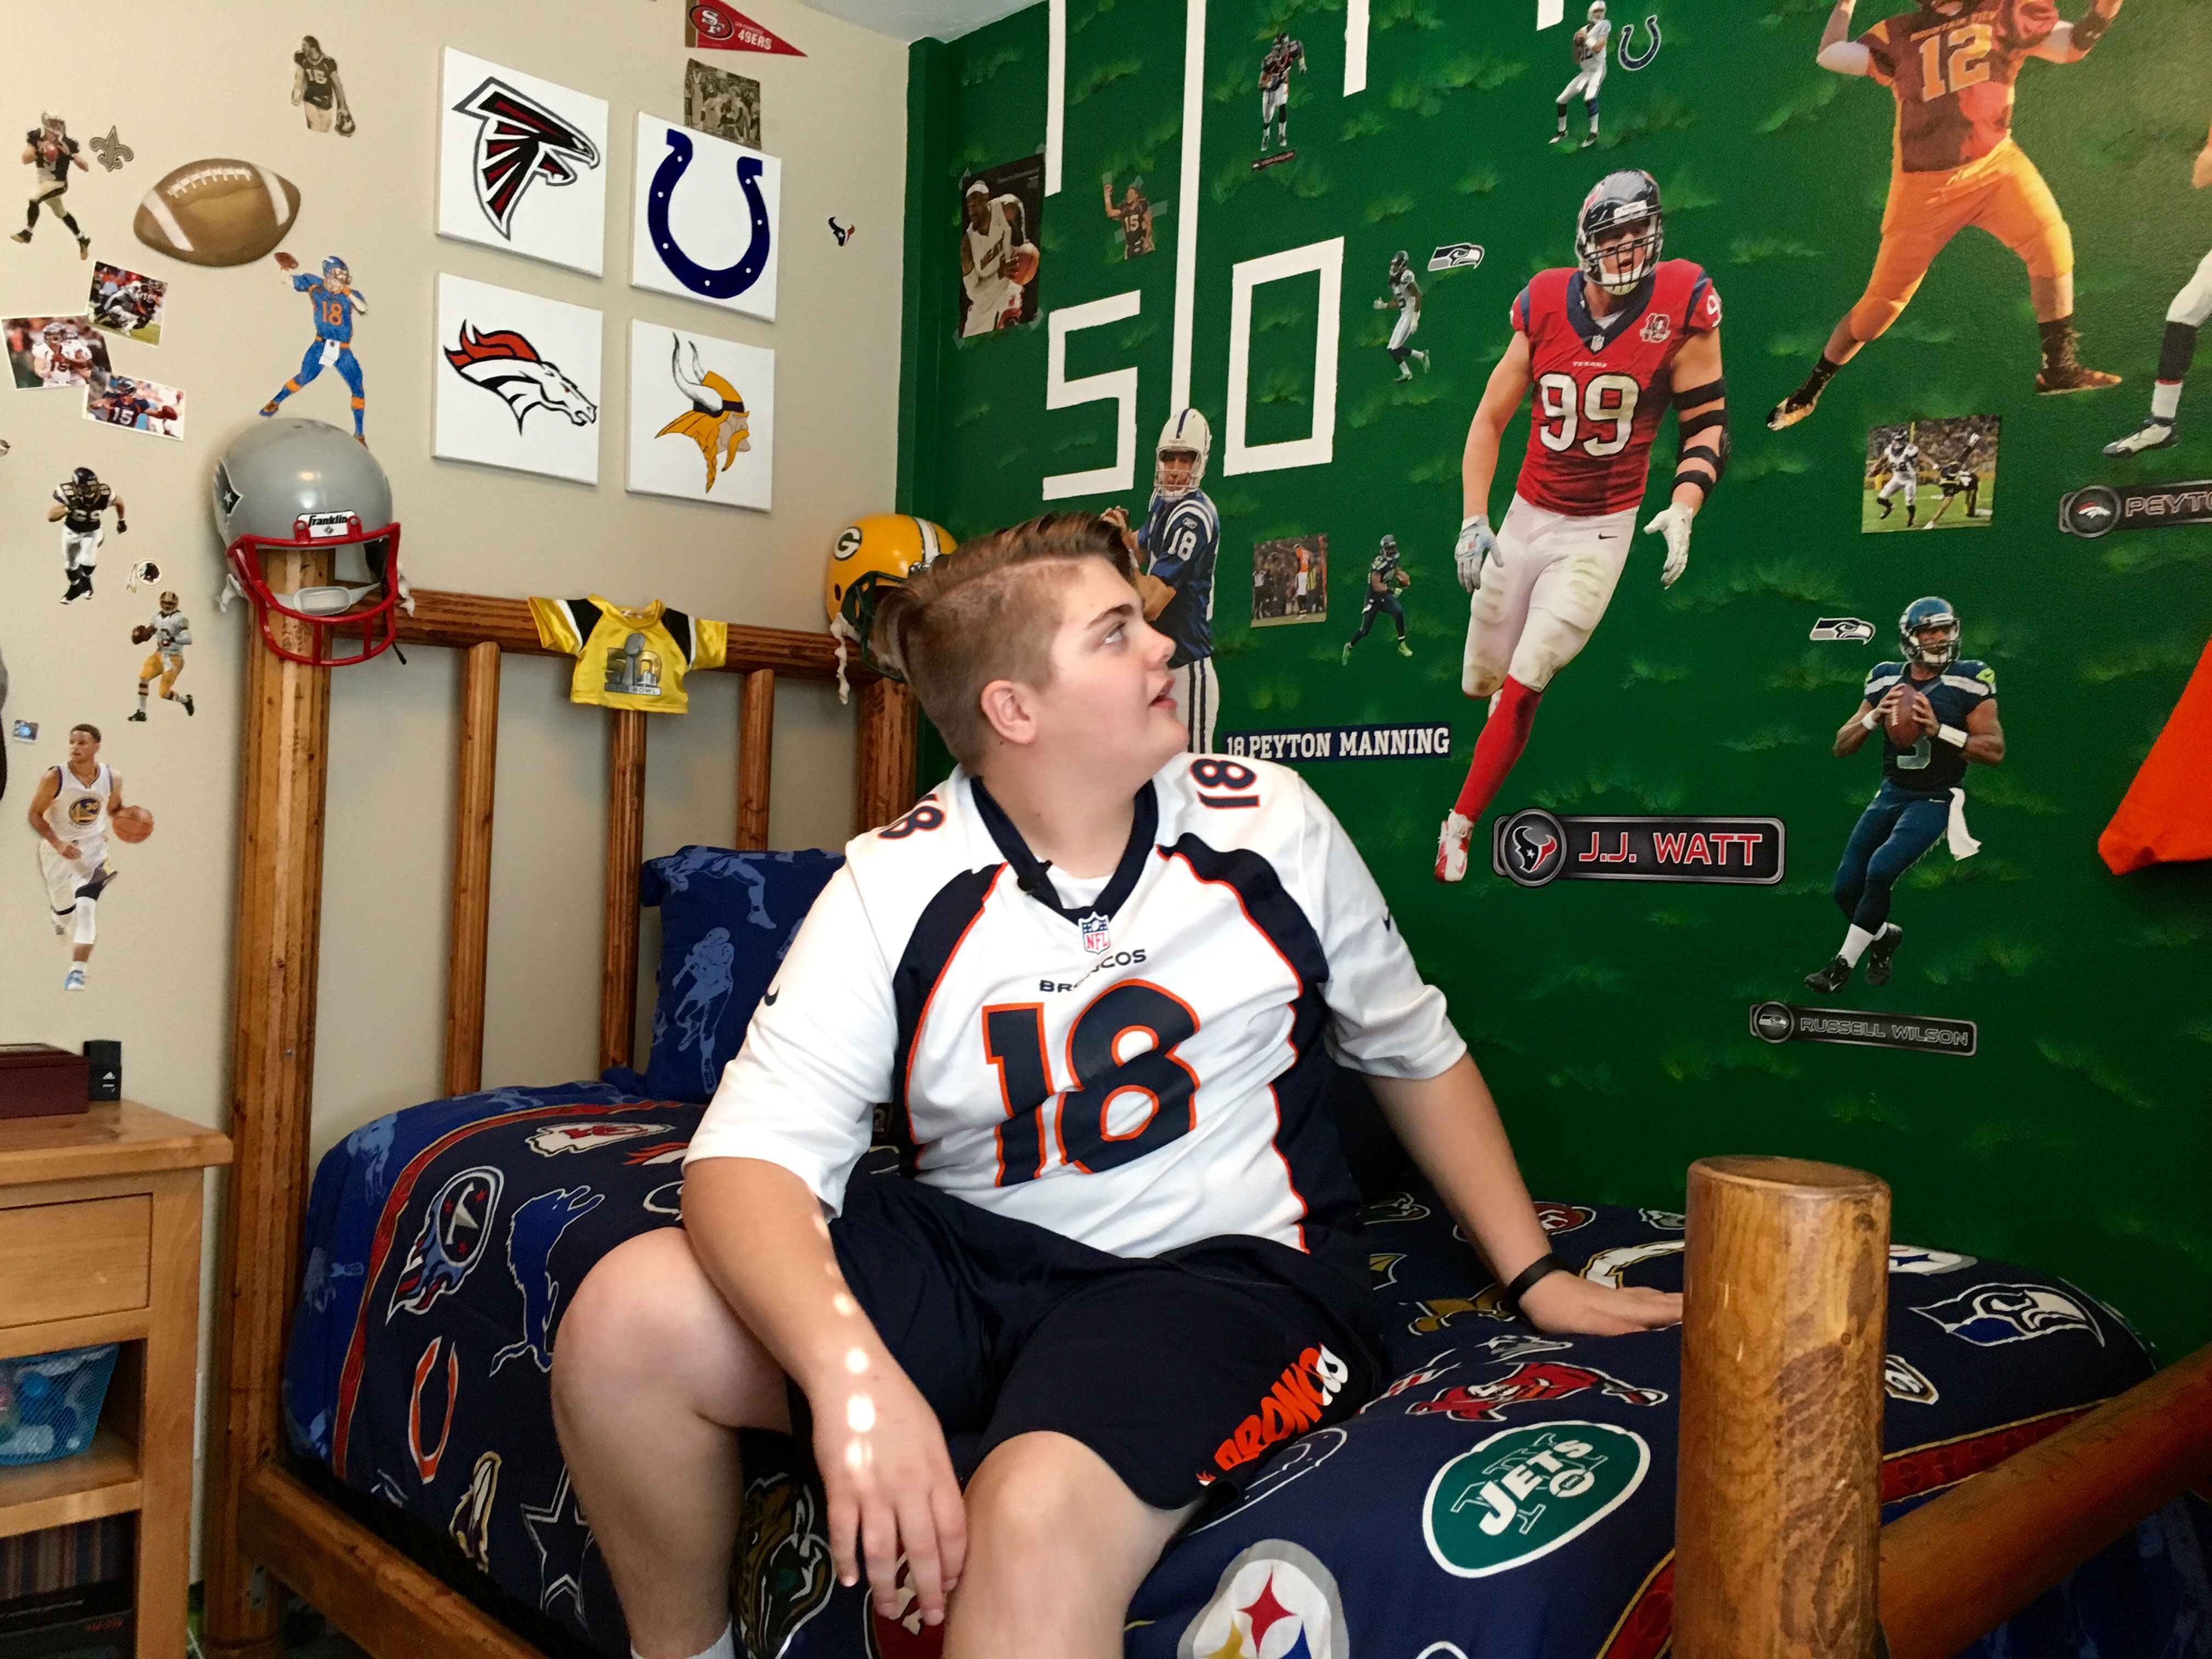 Talon Peterson in his room (credit: CBS)